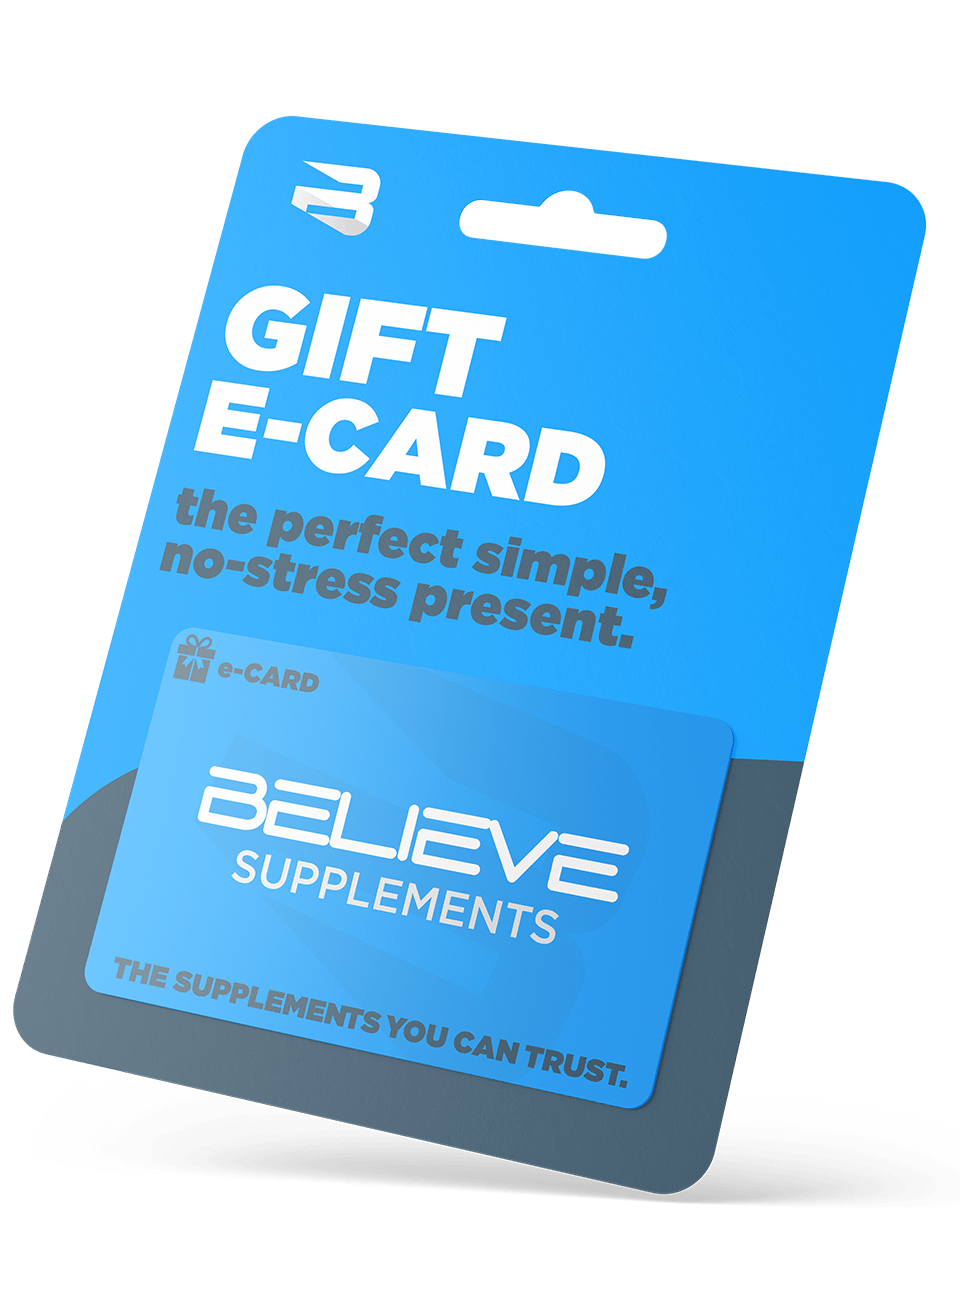 Believe Gift Card